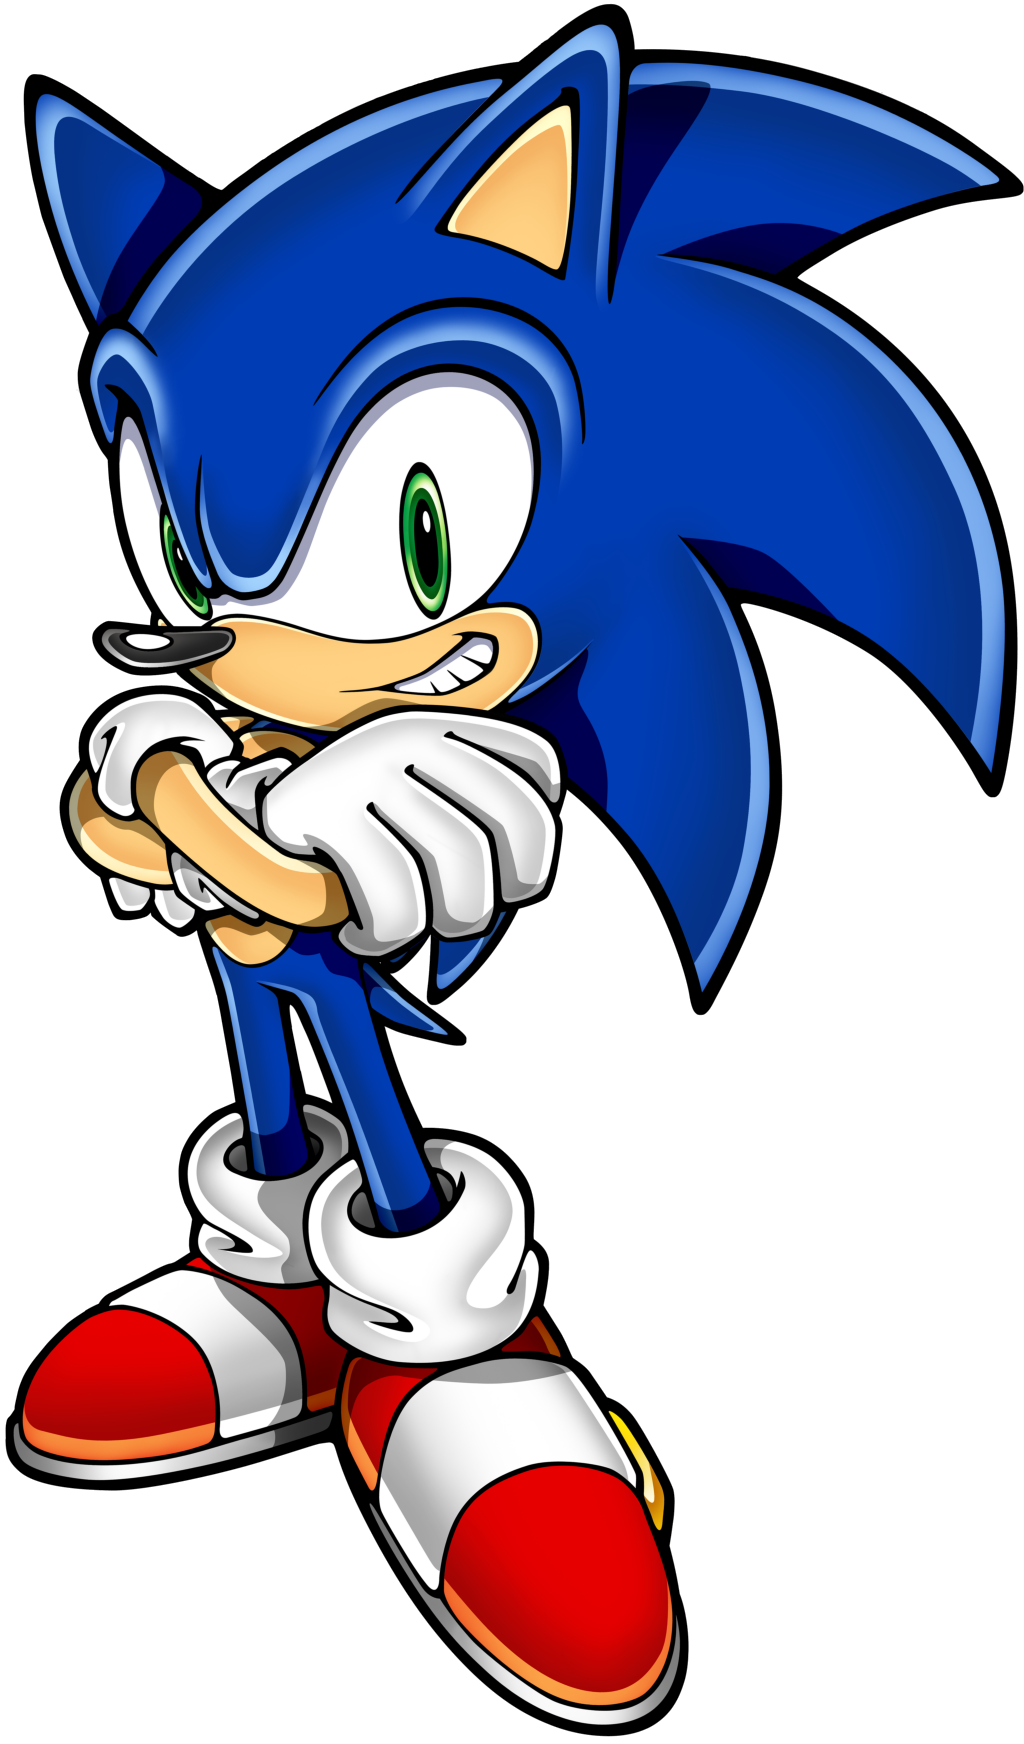 Sonic The Hedgehog Png 11 PNG Image - Sonic The Hedgehog PNG